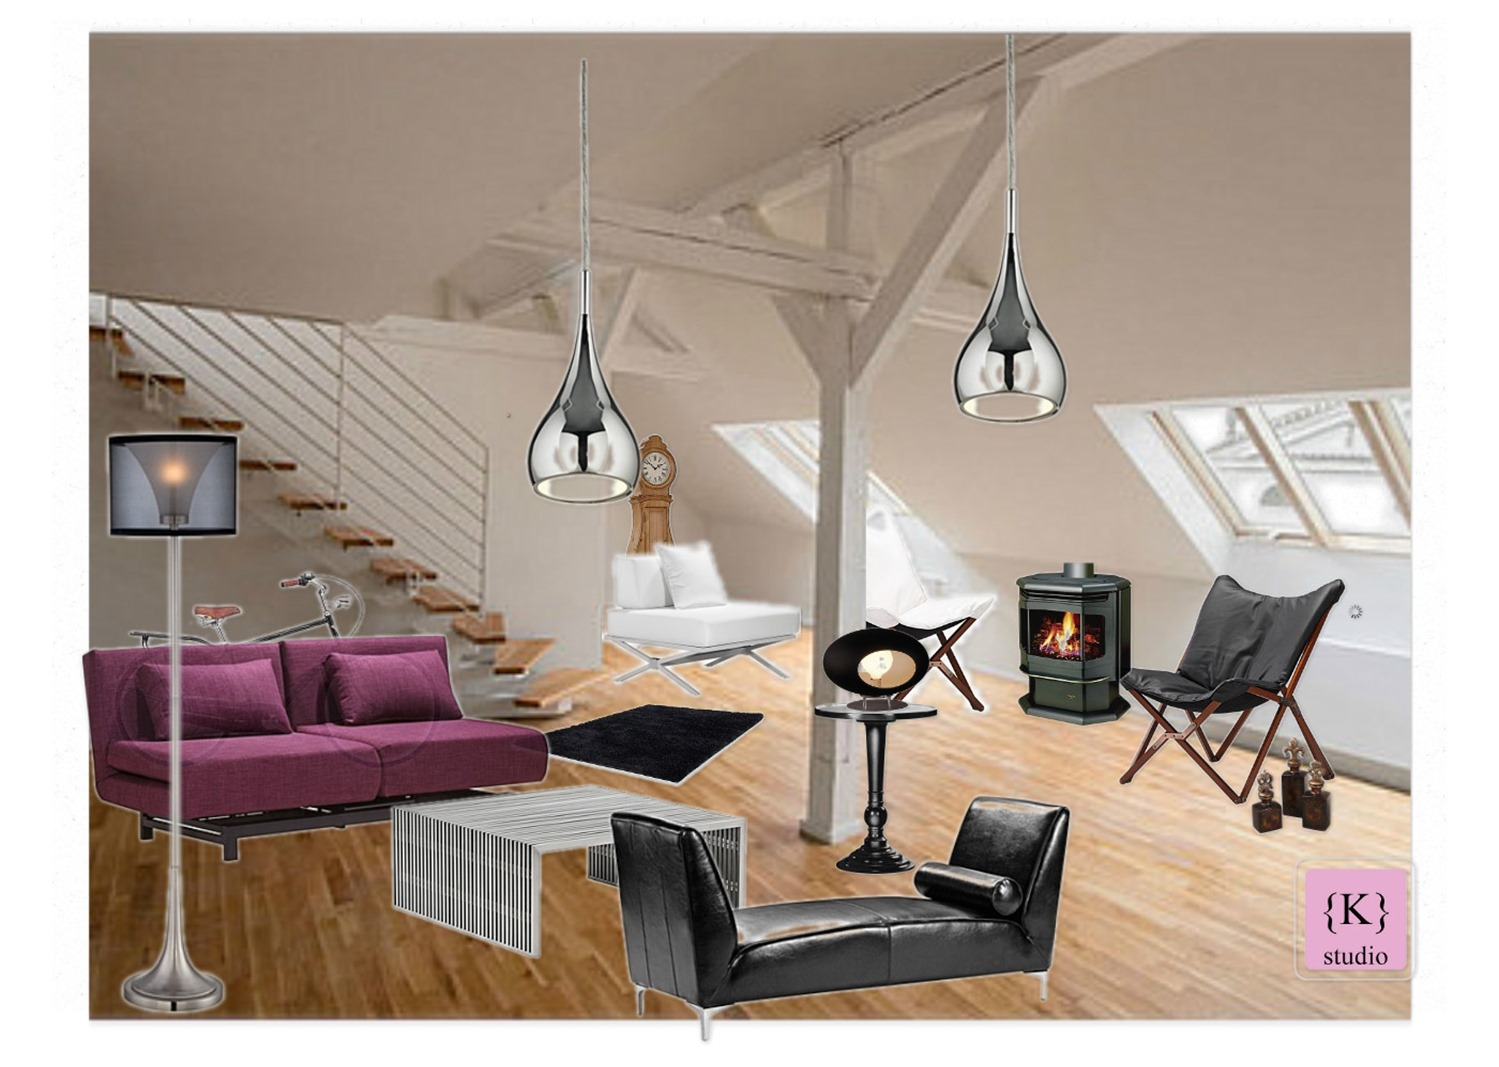 design board: Loft, Euro Style Lighting  -konstadina nastou- {.k.} blog, Κωνσταντίνα Νάστου